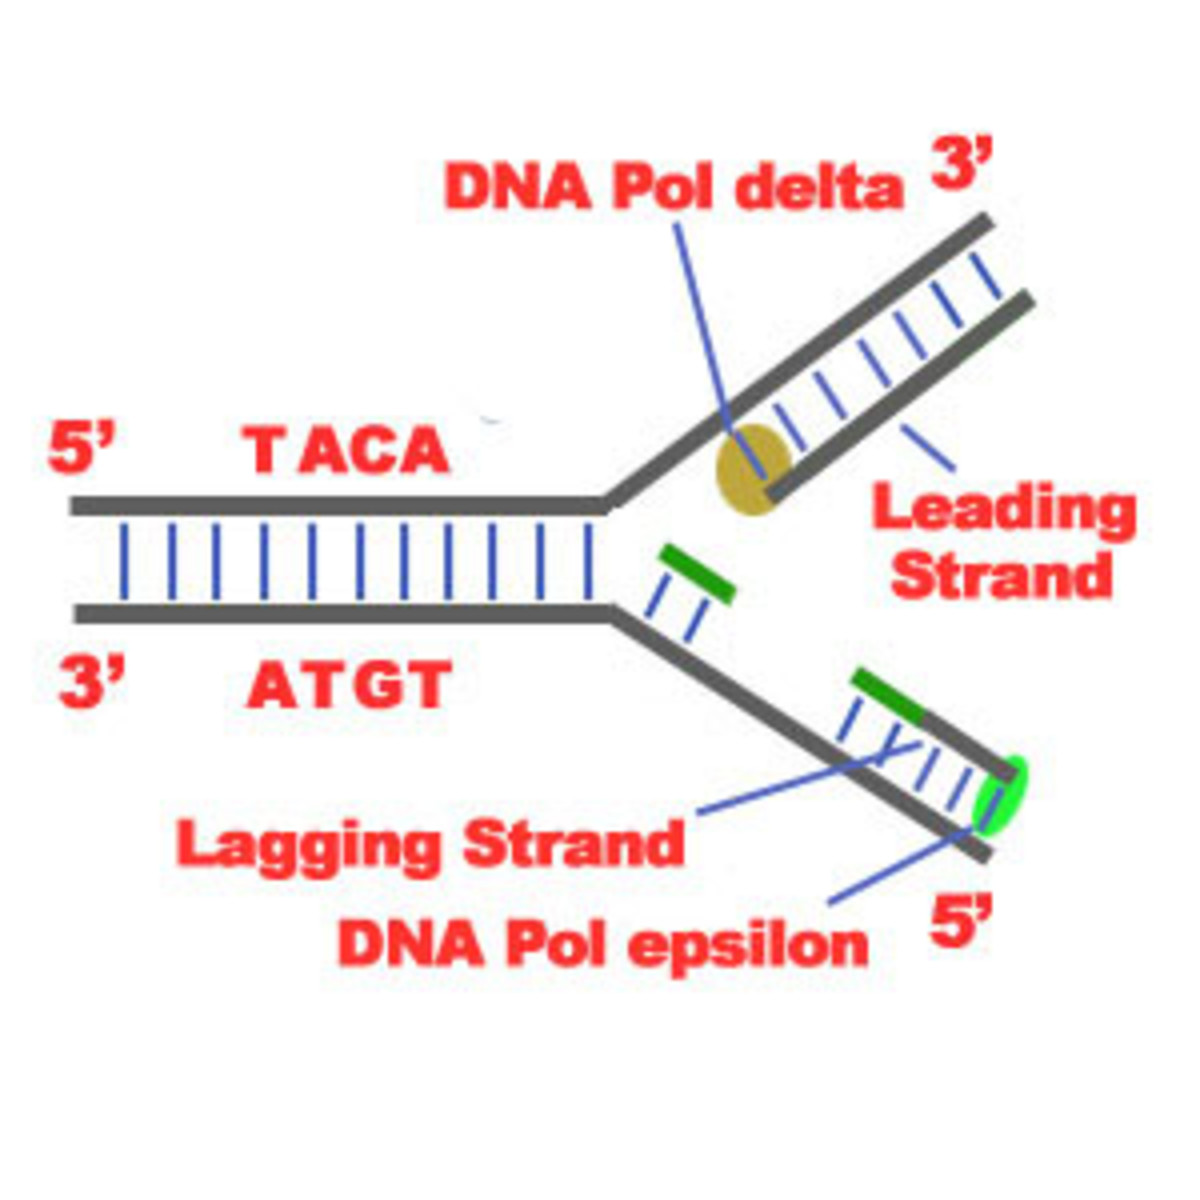 Leading and Lagging Strands and Okazaki Fragments